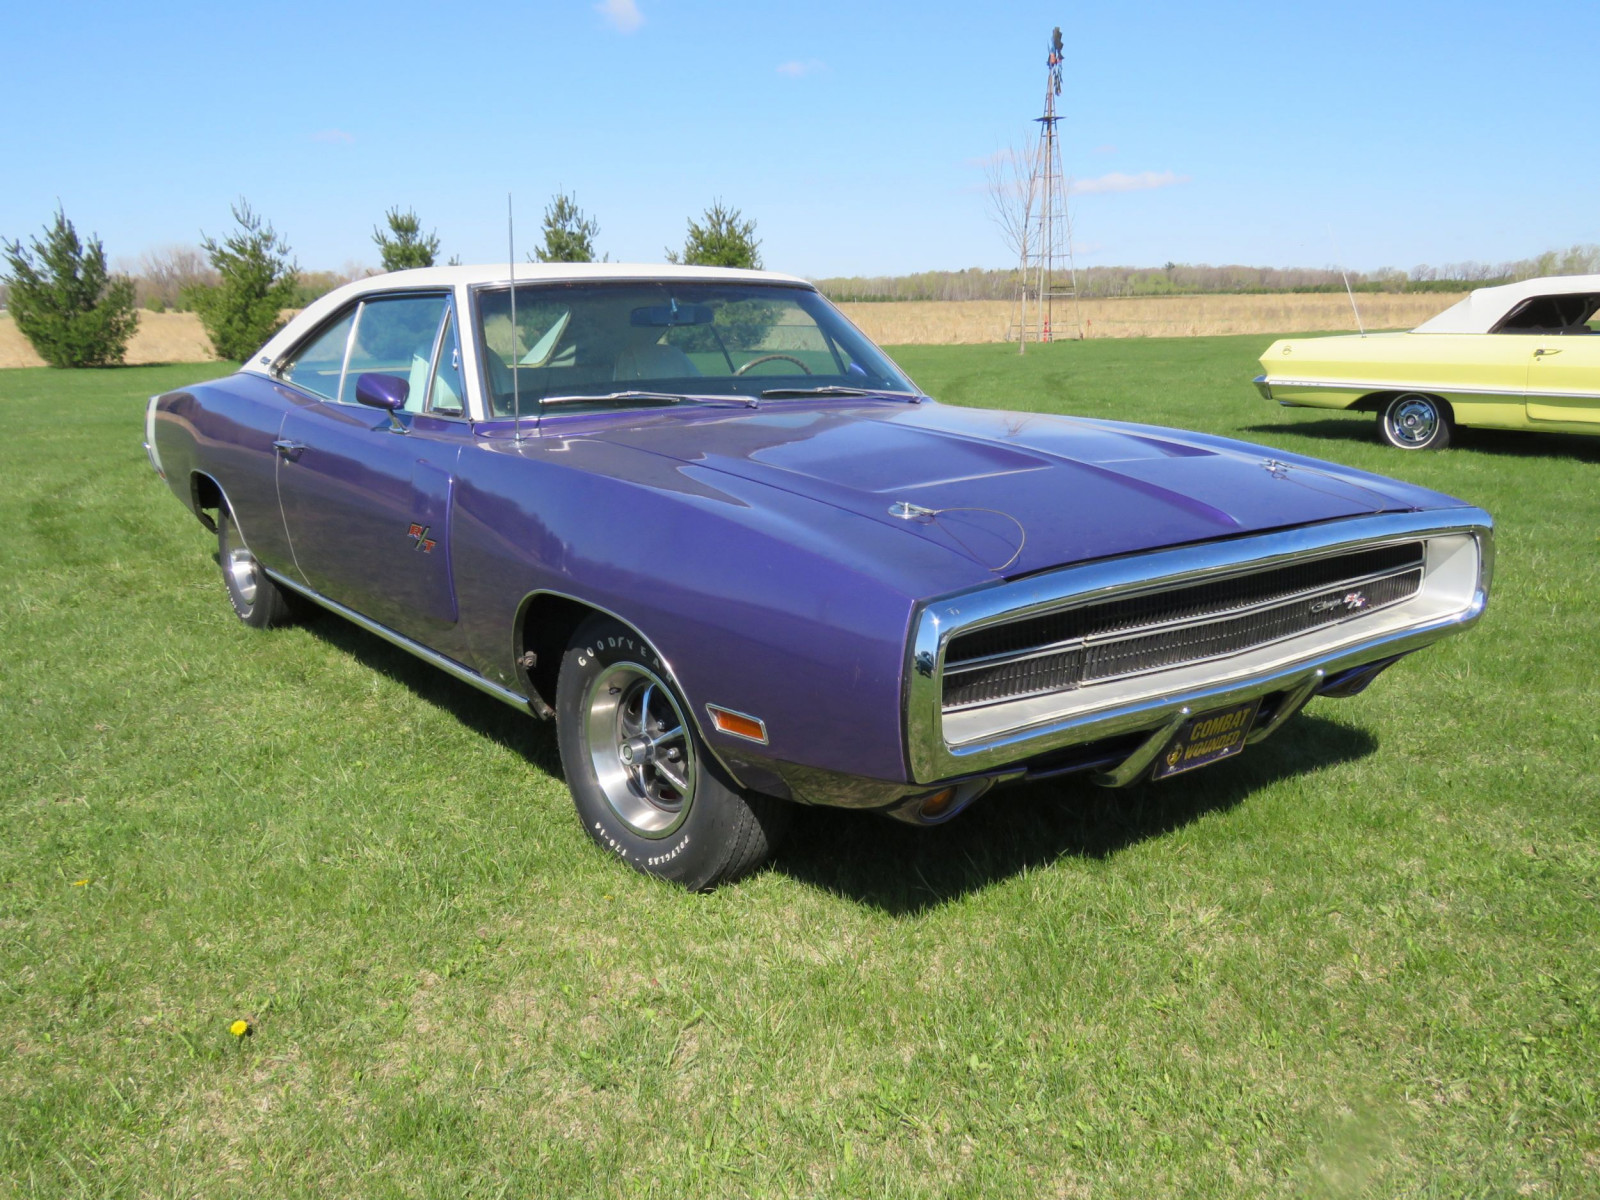 1970 Dodge Charger RT Amazing Survivor - Image 1